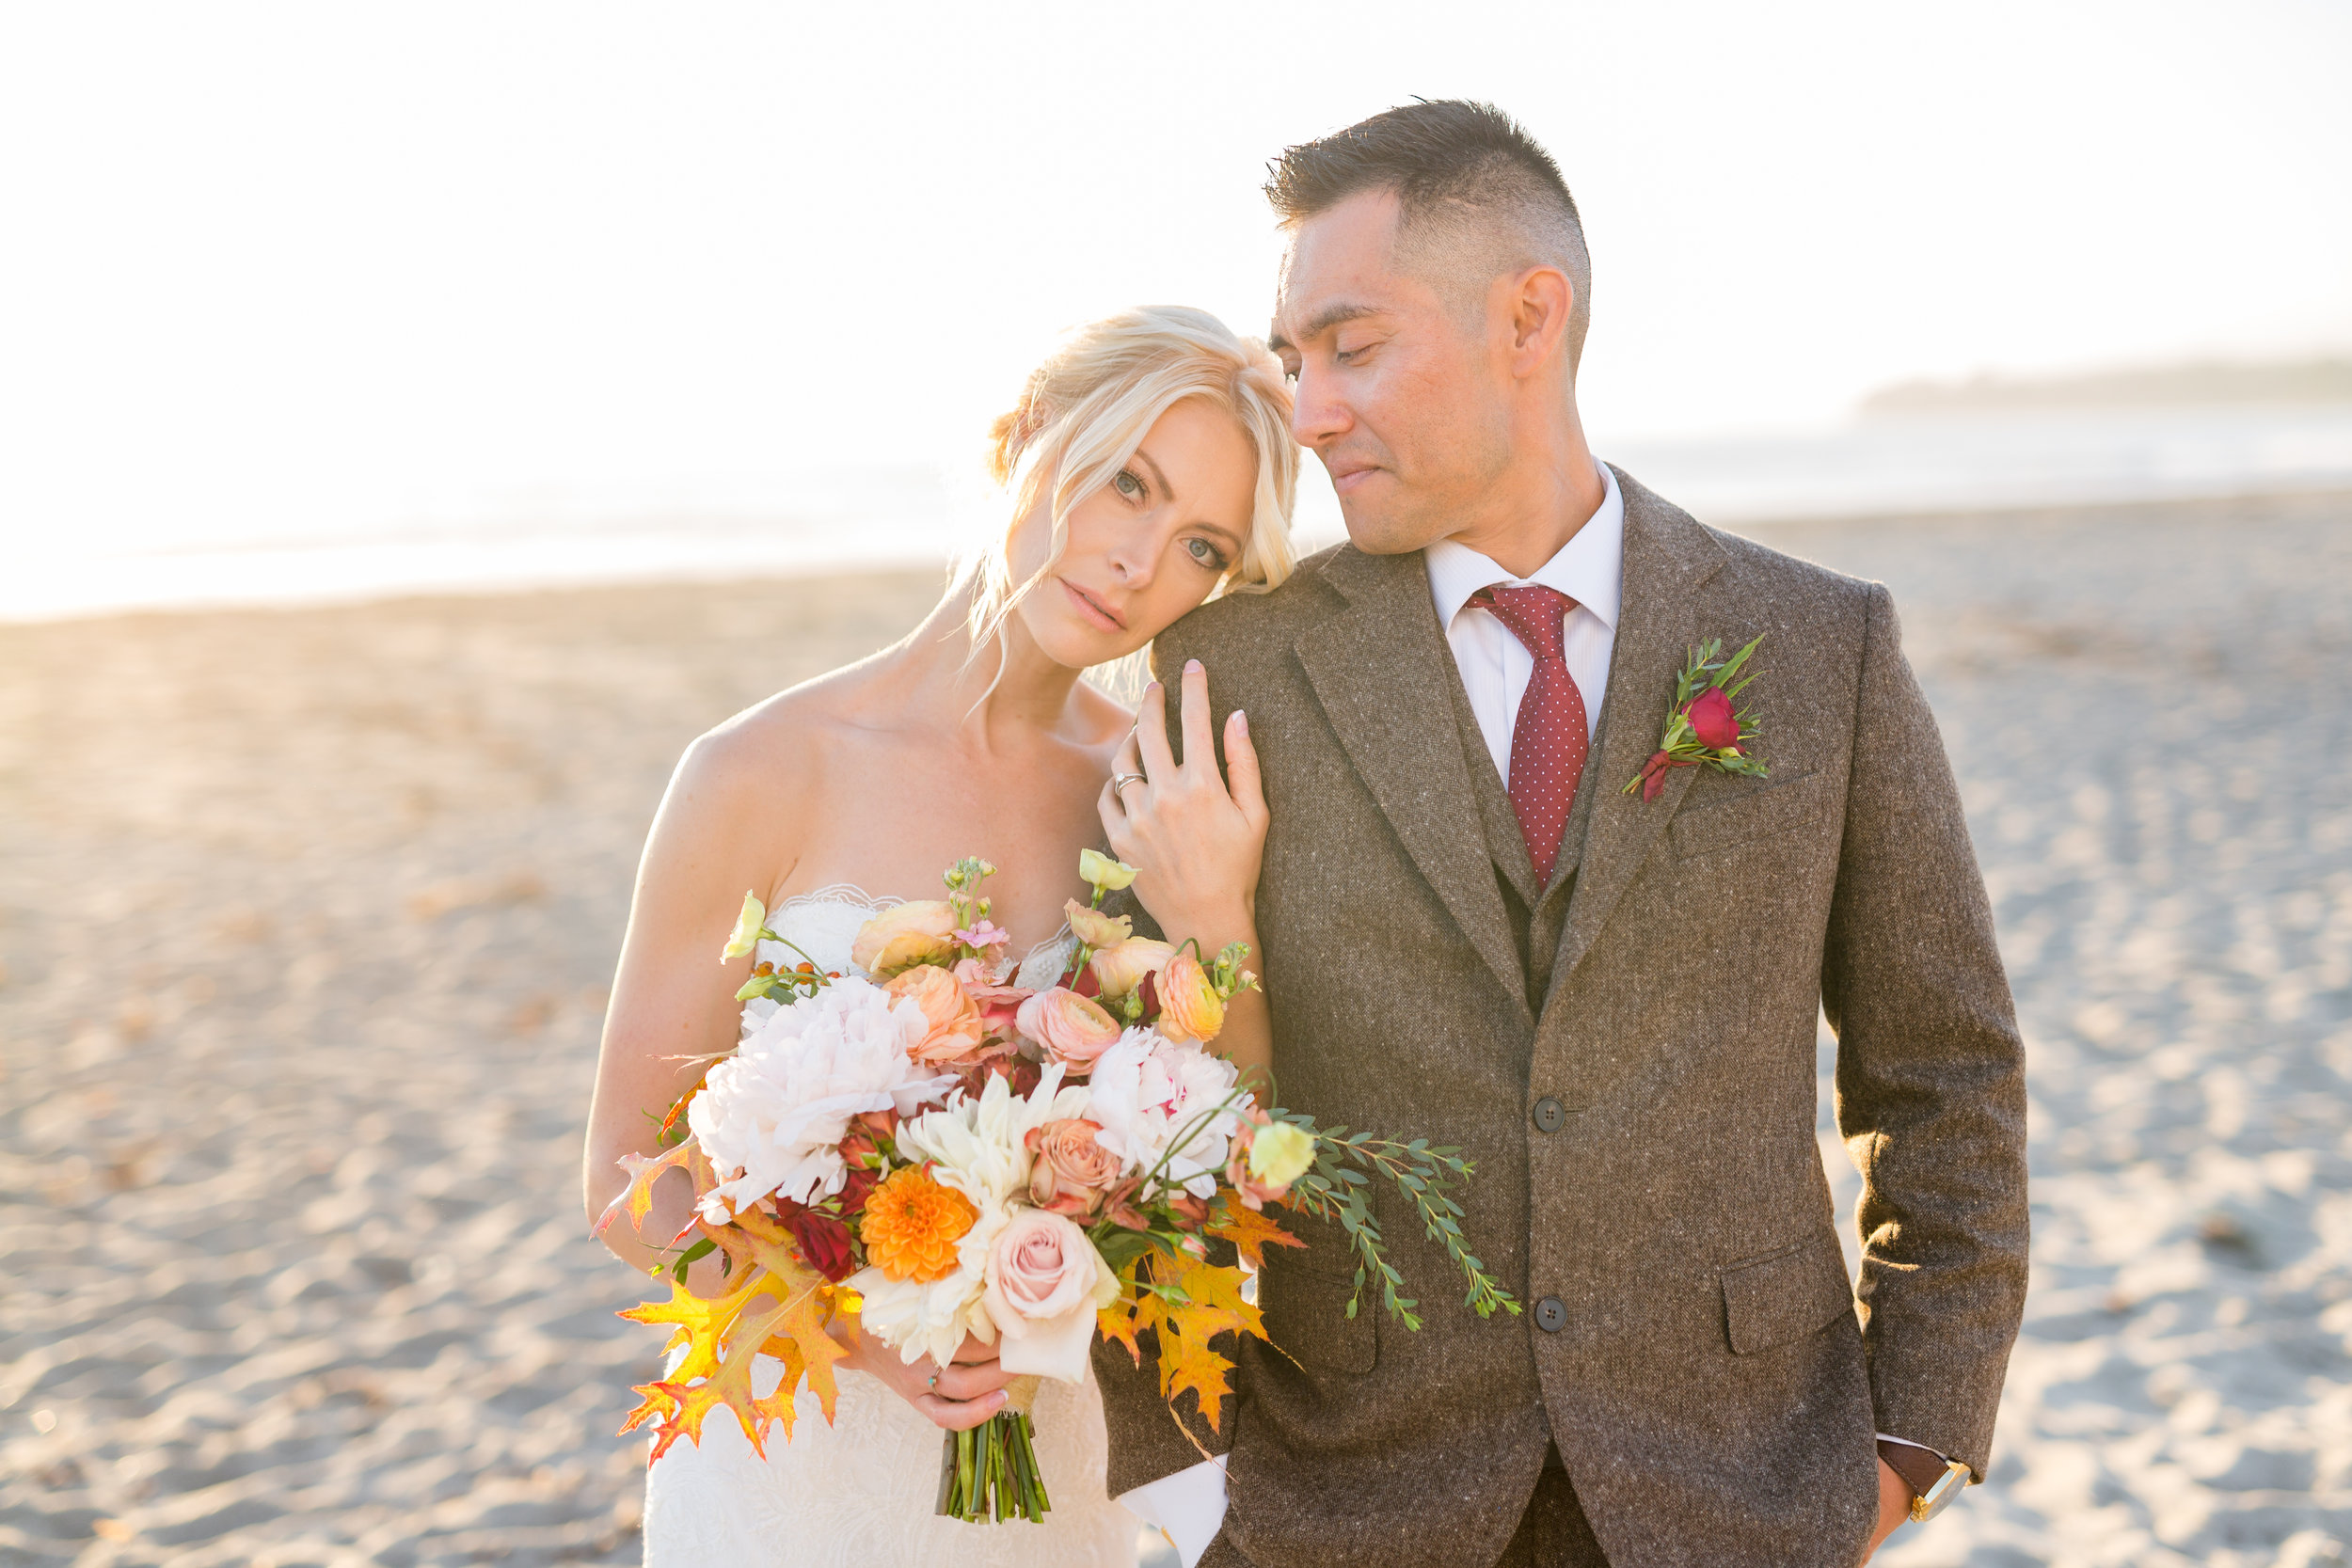 - I just want to thank you again for the incredible beauty you brought to our wedding day. We are still thinking about our gorgeous flowers! From beginning to end, it was an absolute pleasure to work with you. ~ Erin and Larry